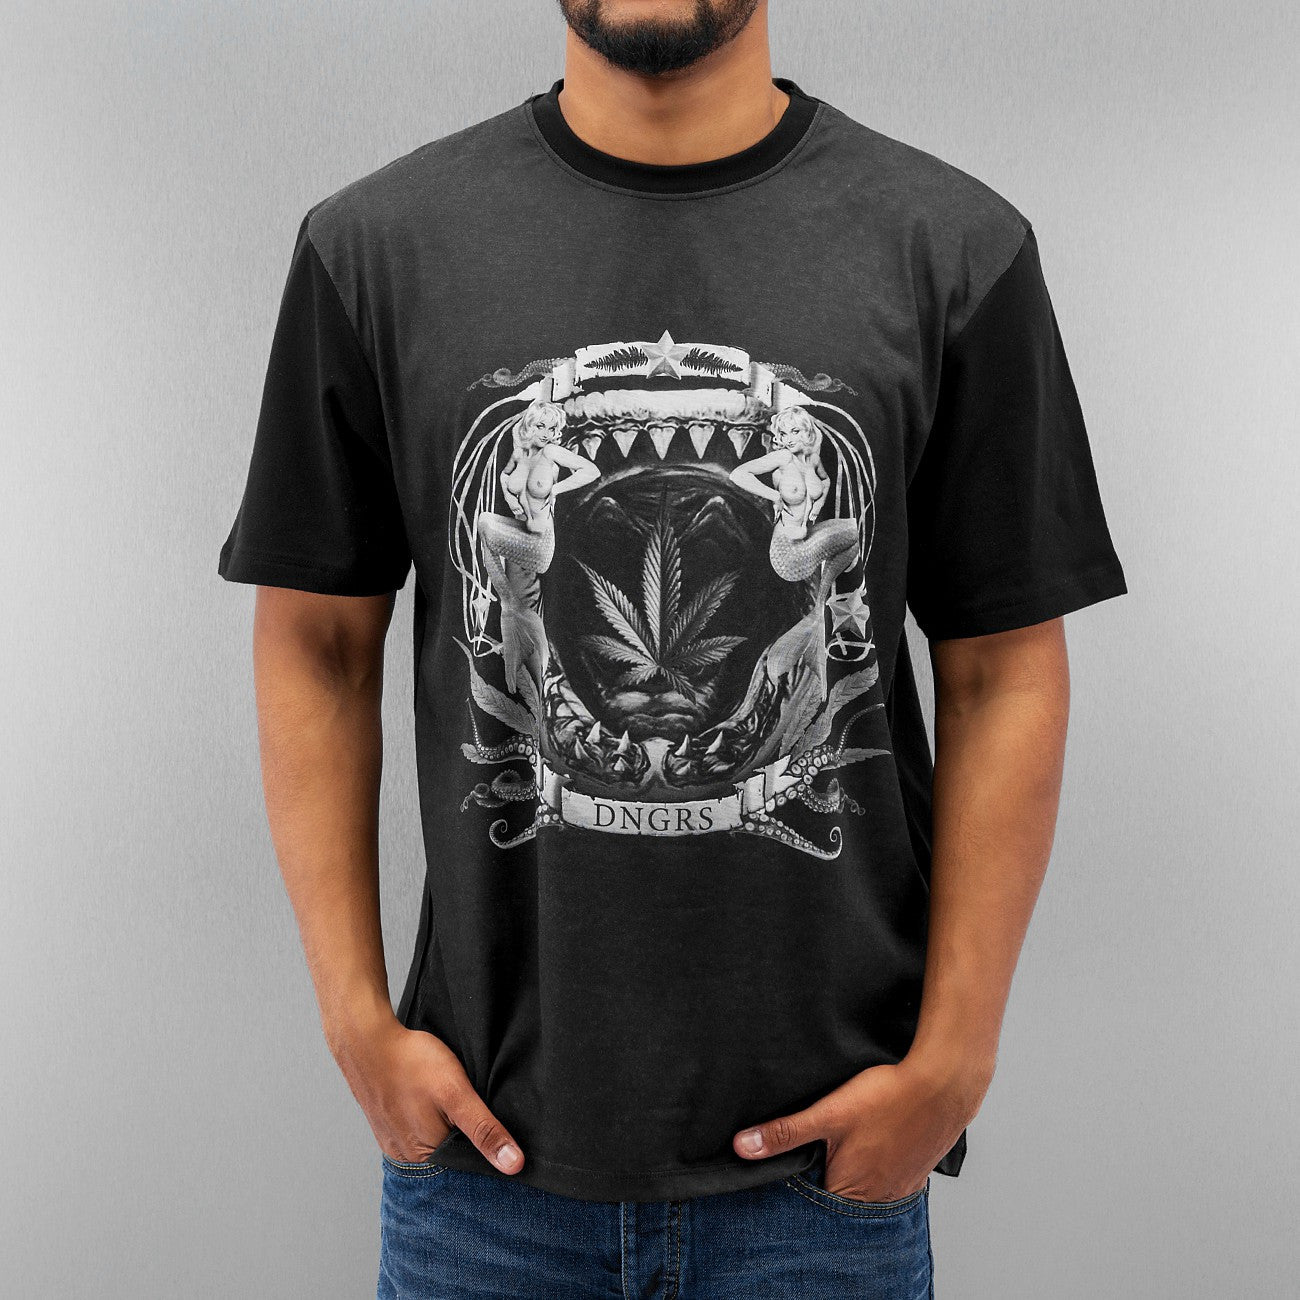 Dangerous DNGRS Drugs T-Shirt  Black